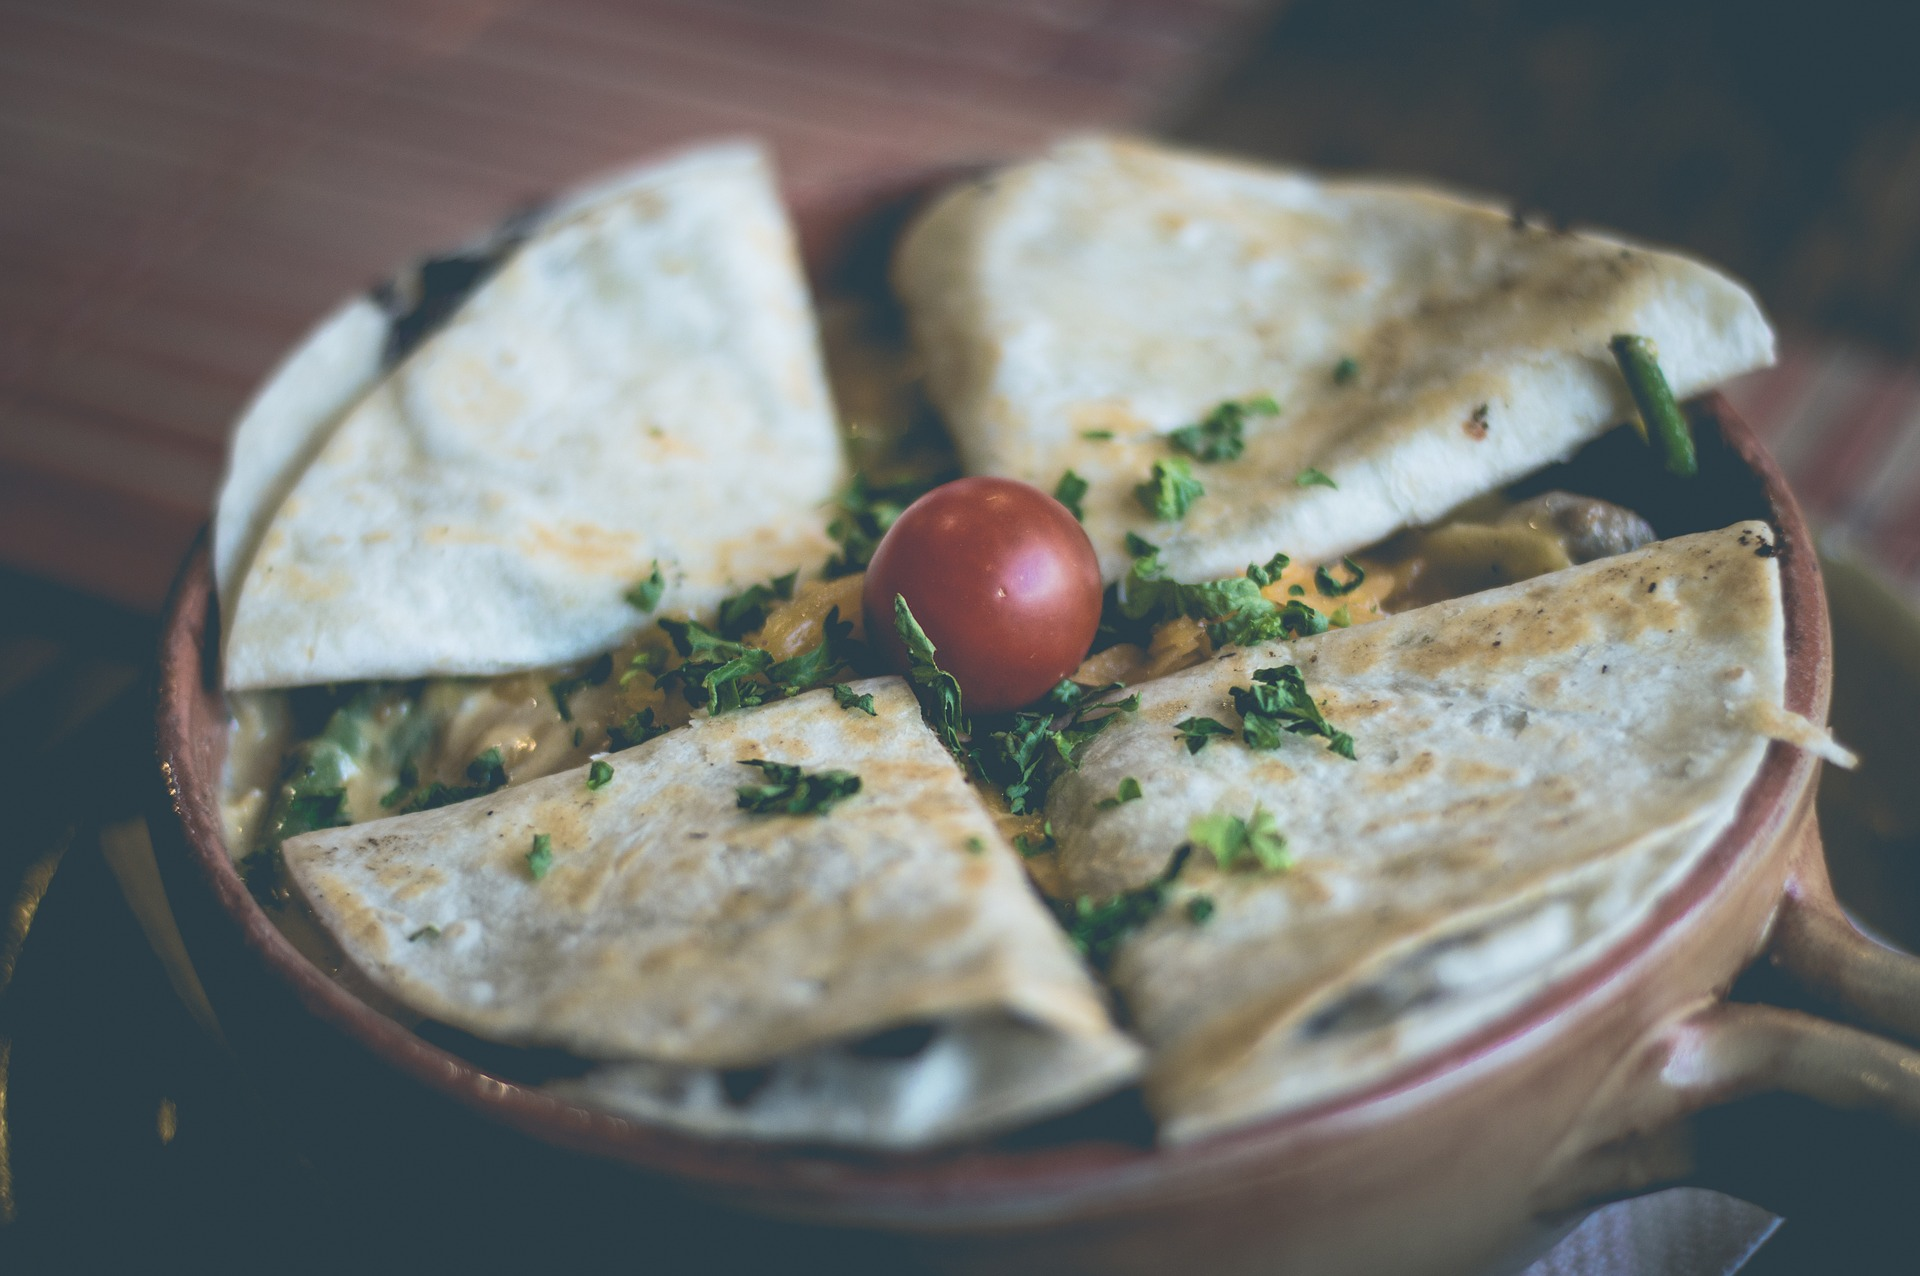 There are no shortages of tasty quesadillas or other authentic Tex-Mex dishes in this city.